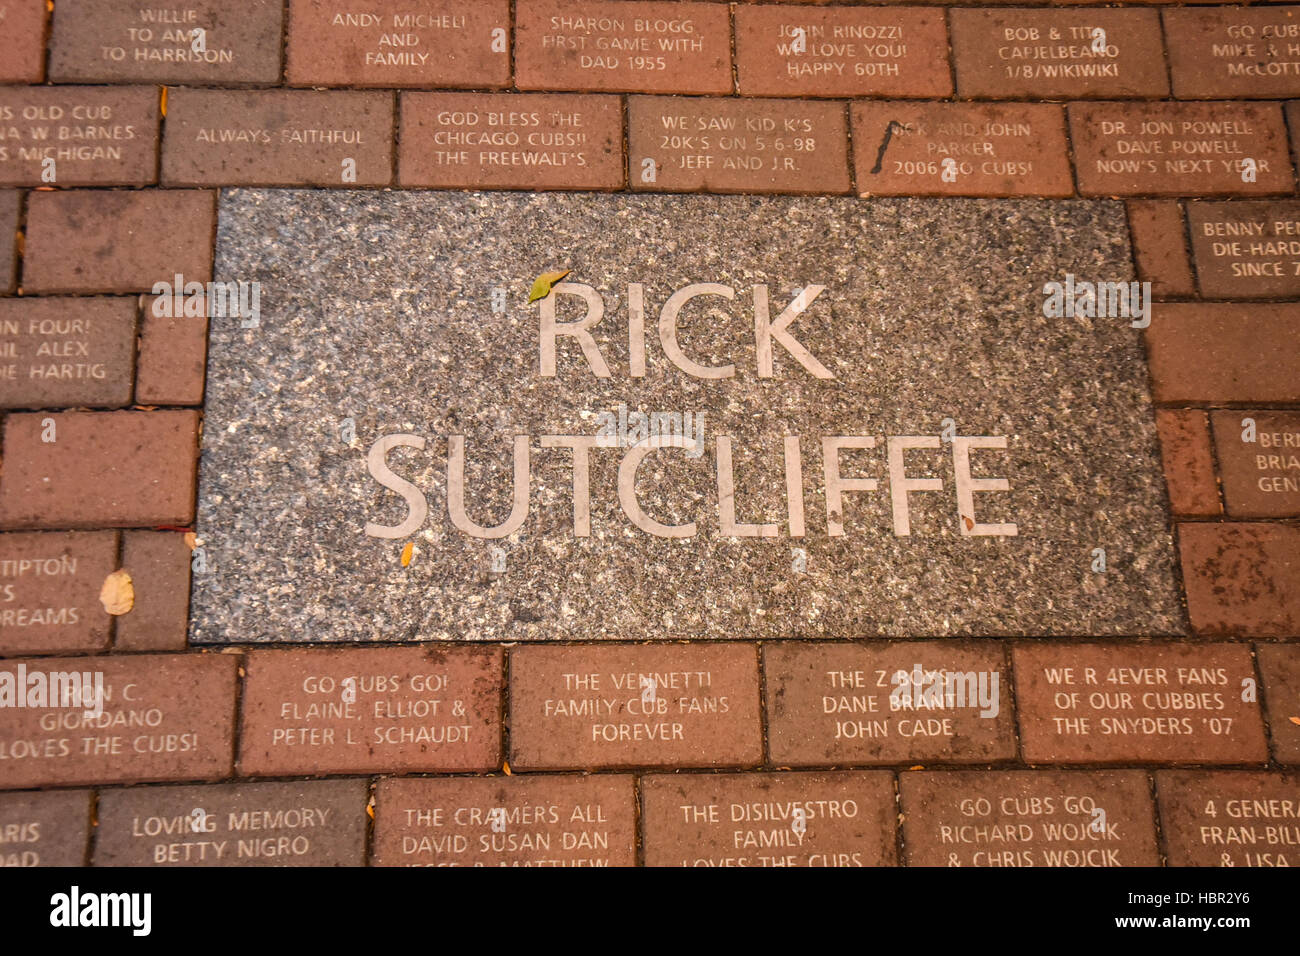 Rick Sutcliffe sidewalk plaque. Wrigley Field is a baseball park located on the North Side of Chicago, Illinois. - Stock Image